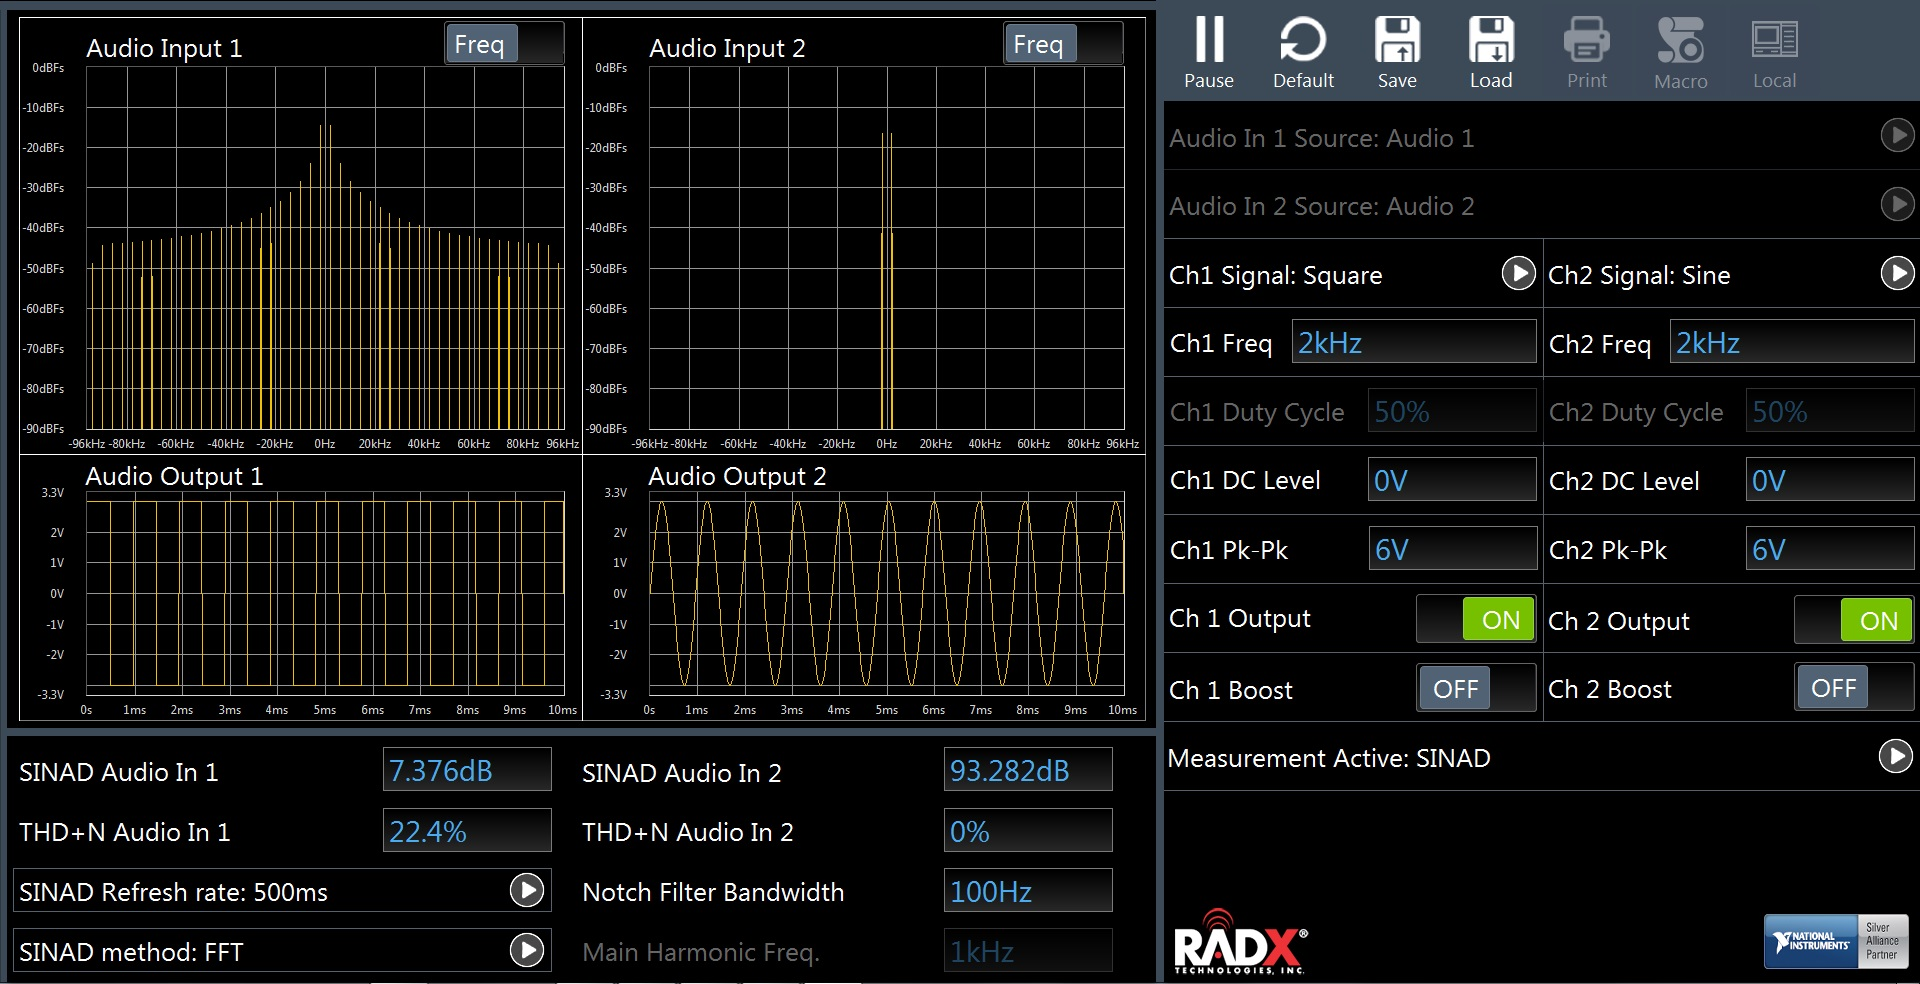 RADX LGT MSFS Audio Analyzer